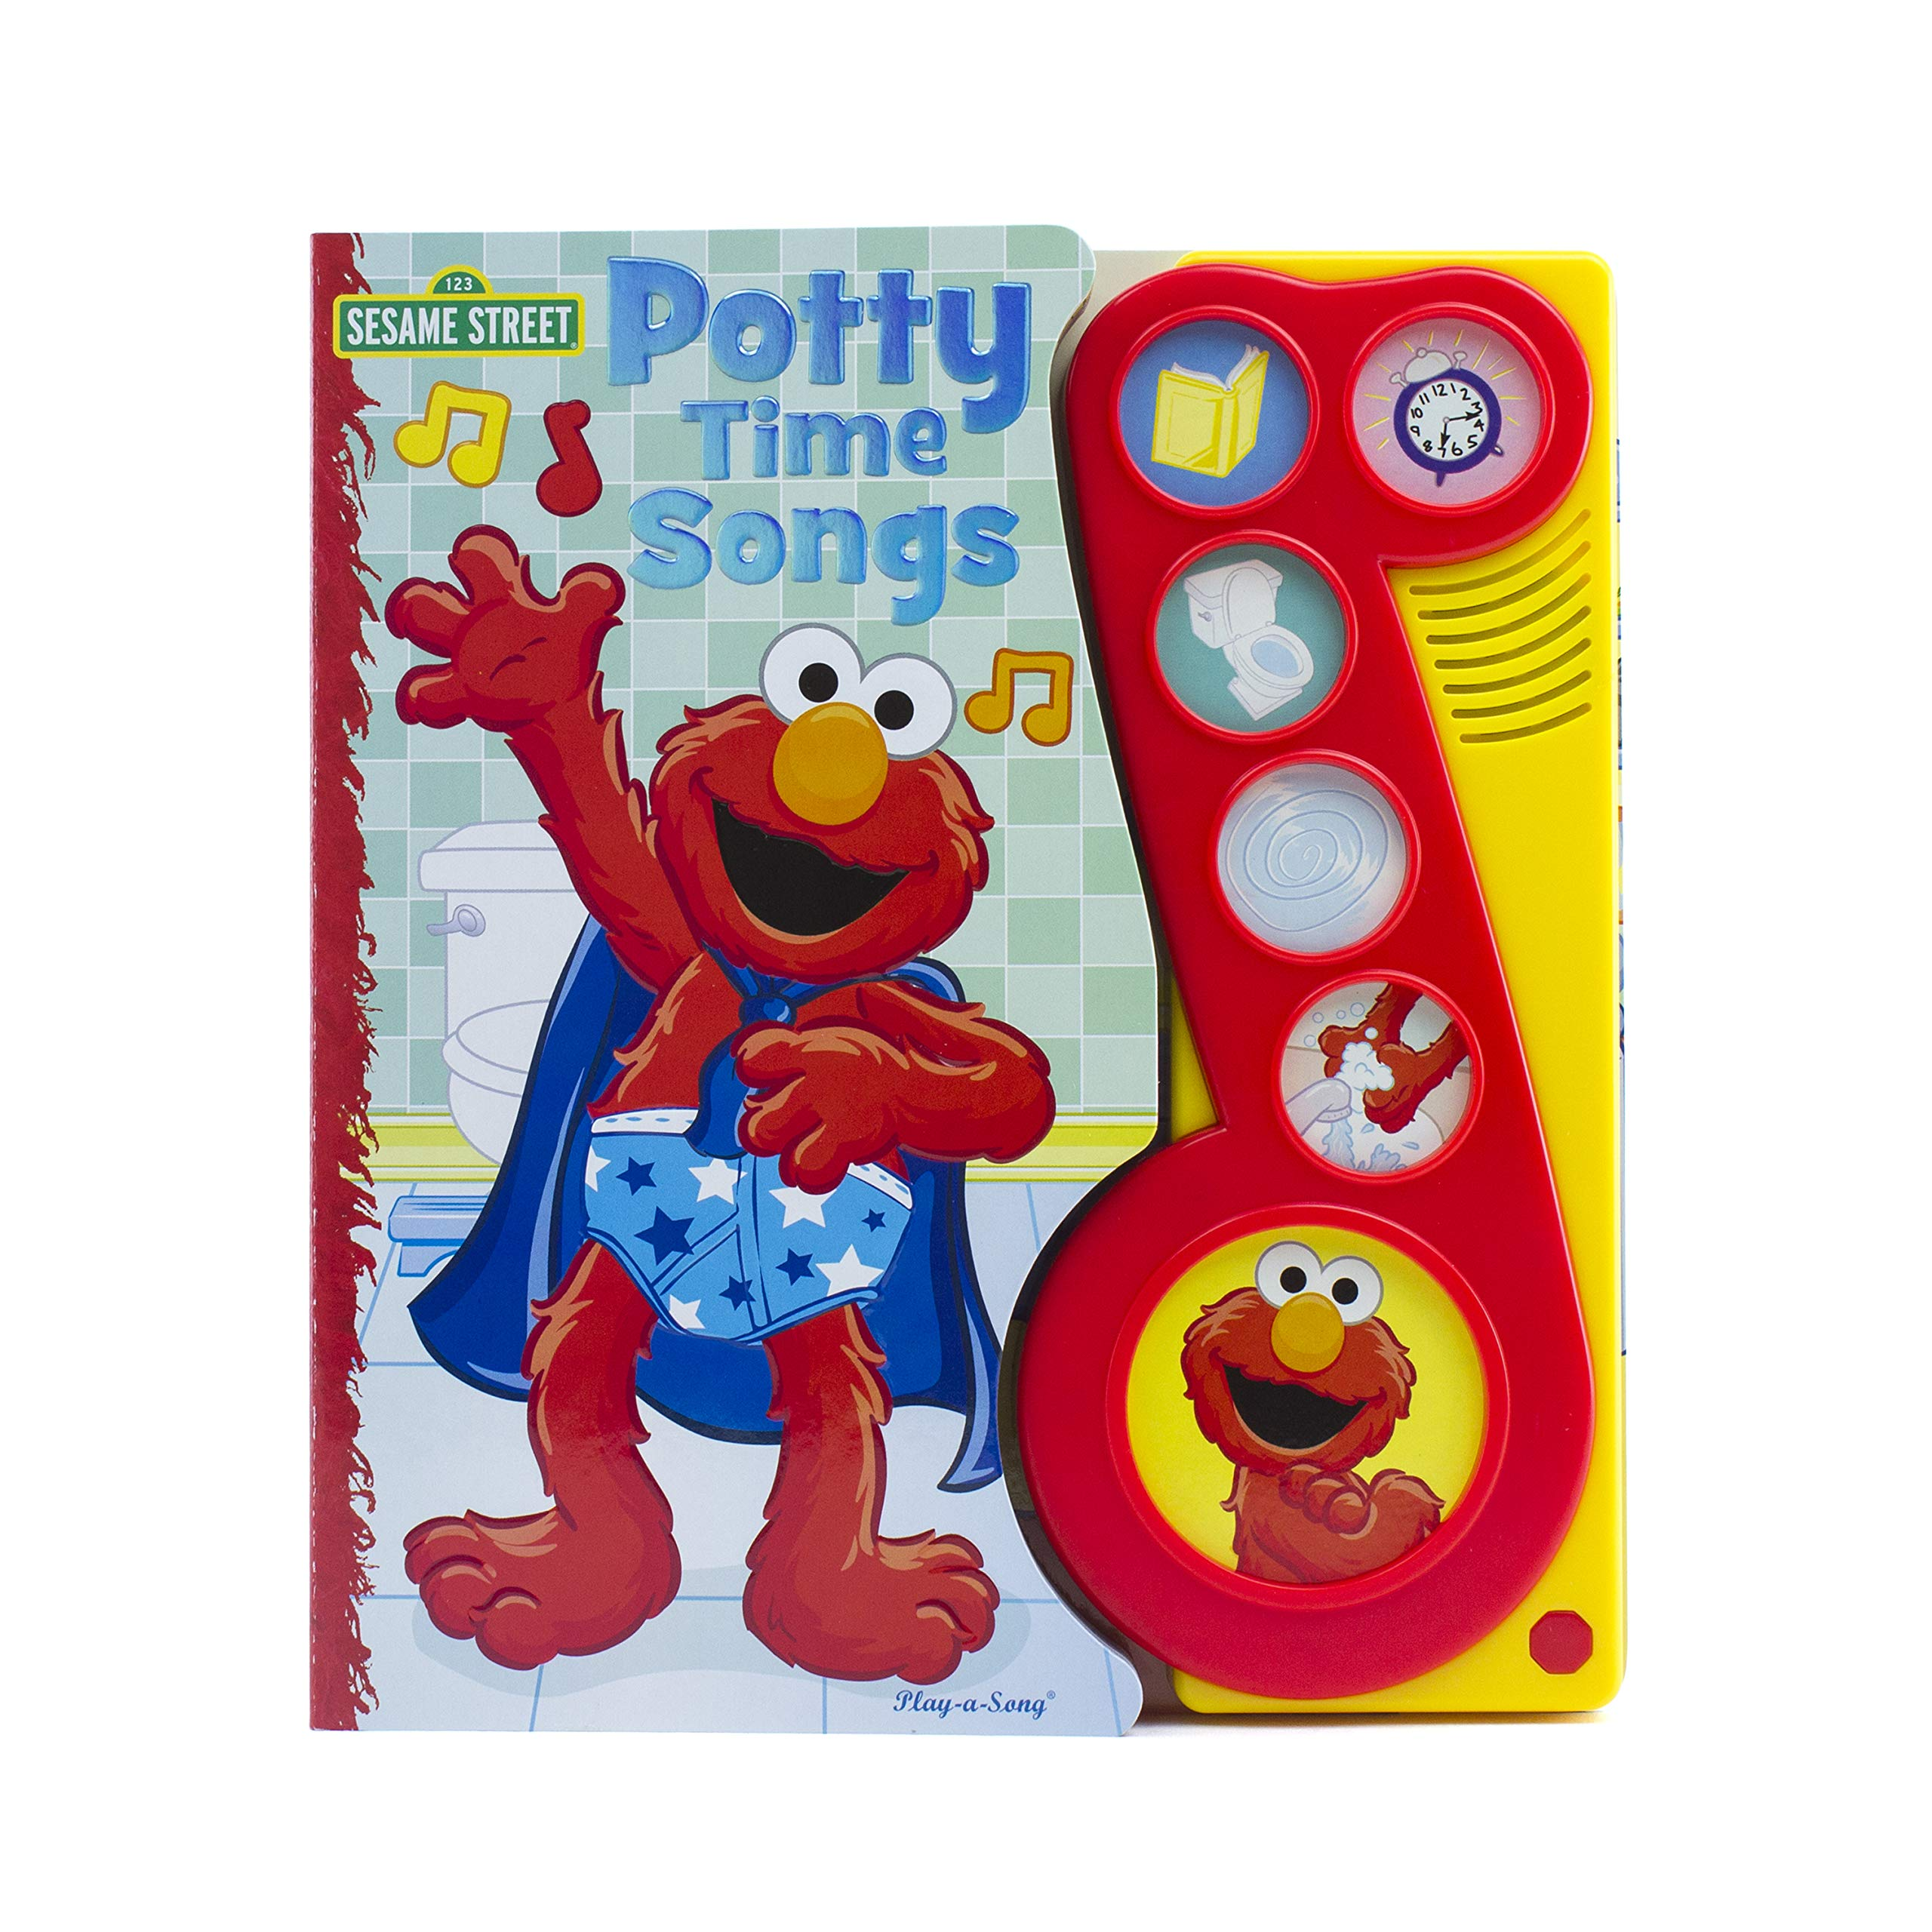 Amazoncom Sesame Street Elmo Potty Time Songs Little Music Note